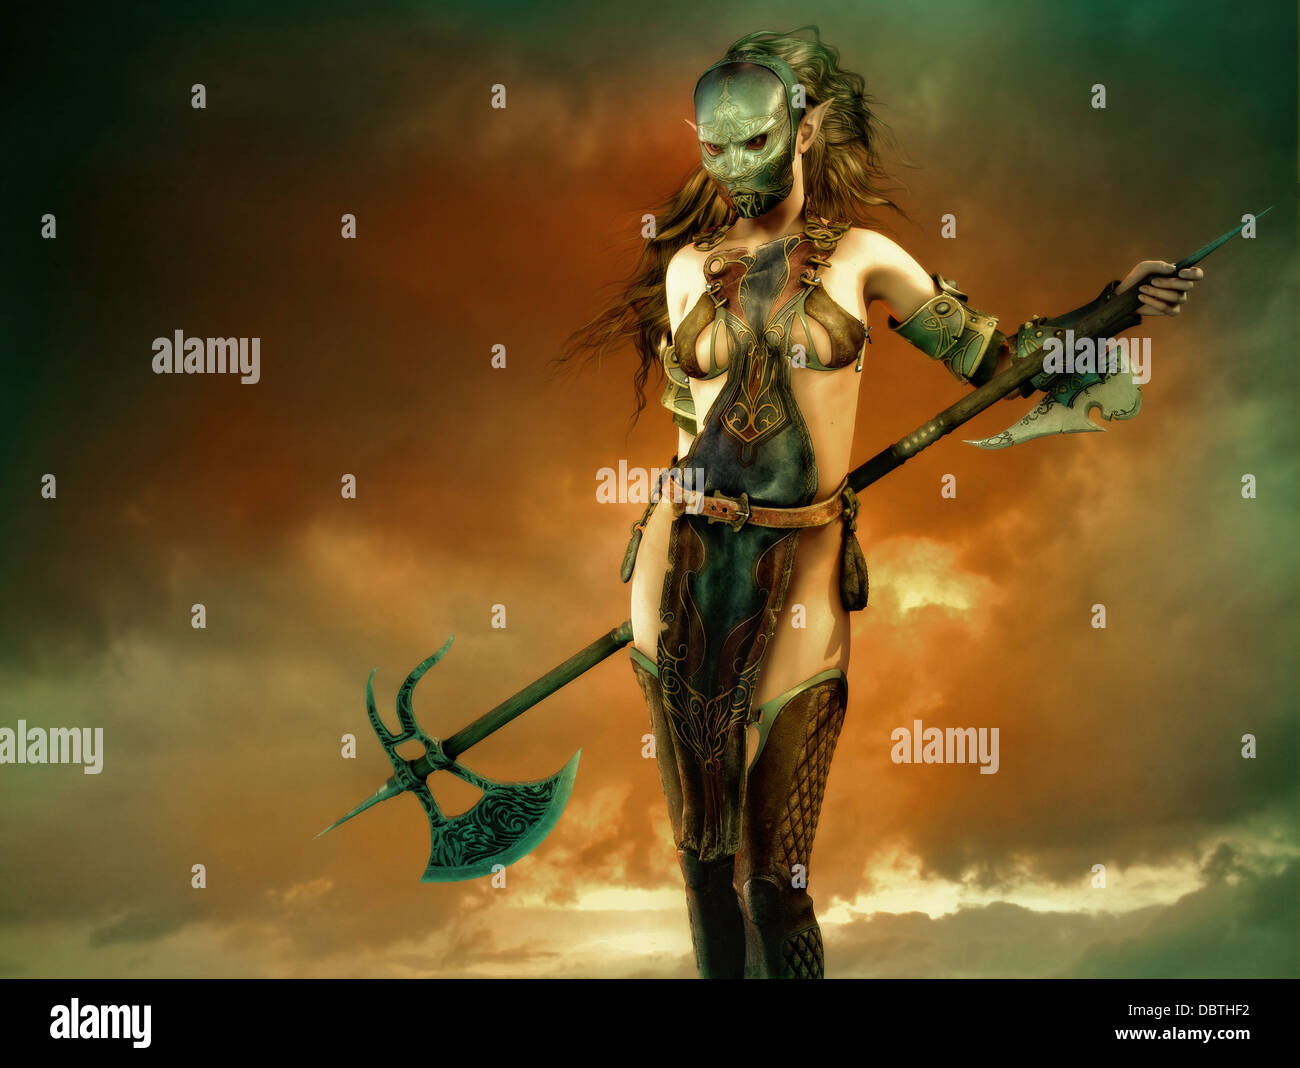 3d fantasy computer graphics of a woman with a iron mask and a long